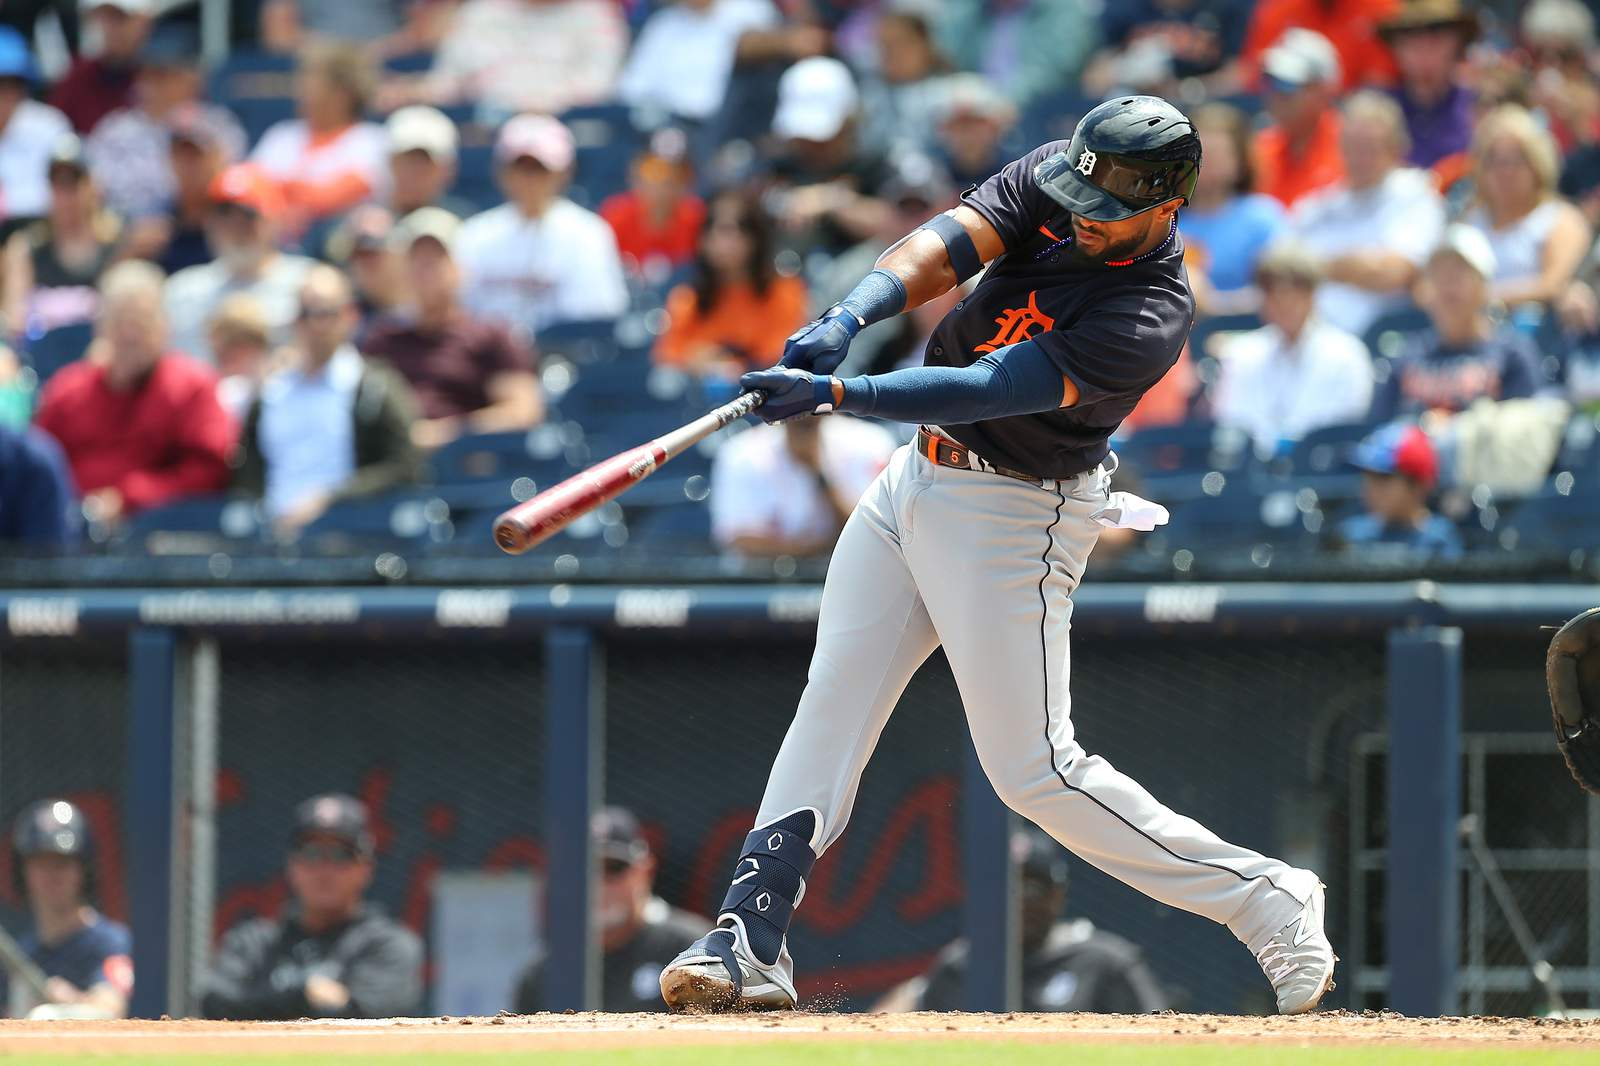 5 Possible Detroit Tigers Starting Lineups That Include 3 New Free Agent Signings